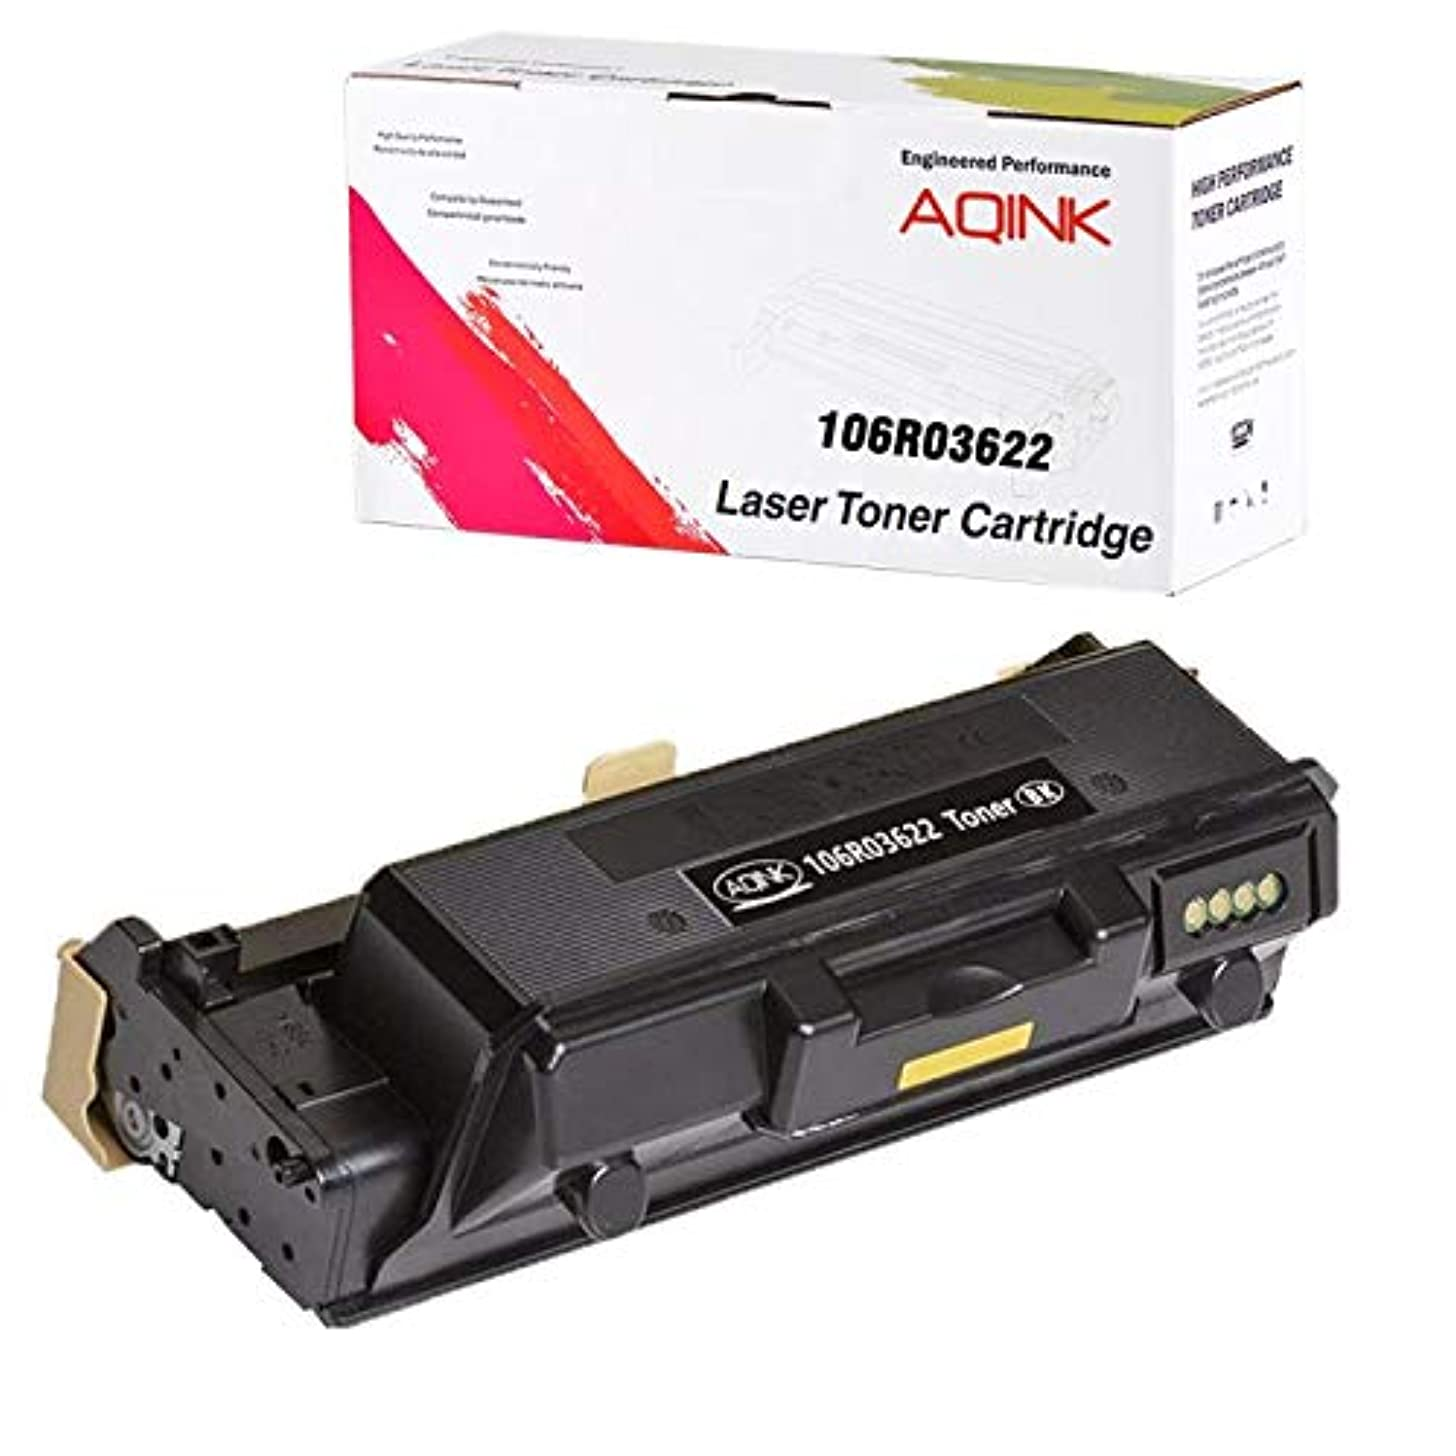 AQINK Compatible Toner Cartridge Replacement for Xerox 106R03622 106R03621 Toner Cartridge for Use in Xerox WorkCentre 3335 3345 Printer, Phaser 3330 Printer, 8,500 Pages (106R03622 Black, 1-Pack)